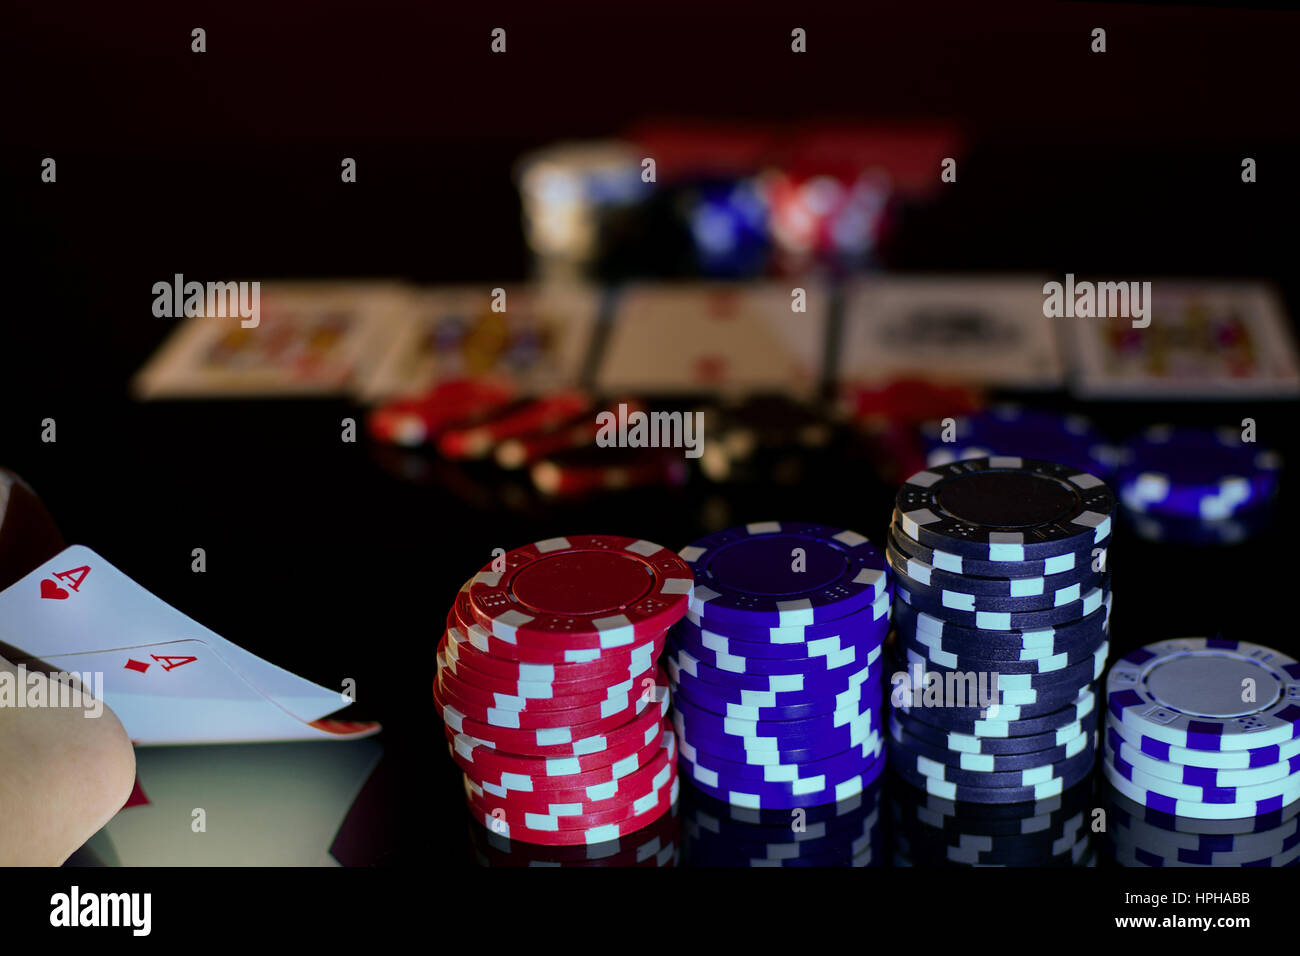 Pair of aces in pocket pair and poker chips. Black surface, horizontal view. - Stock Image